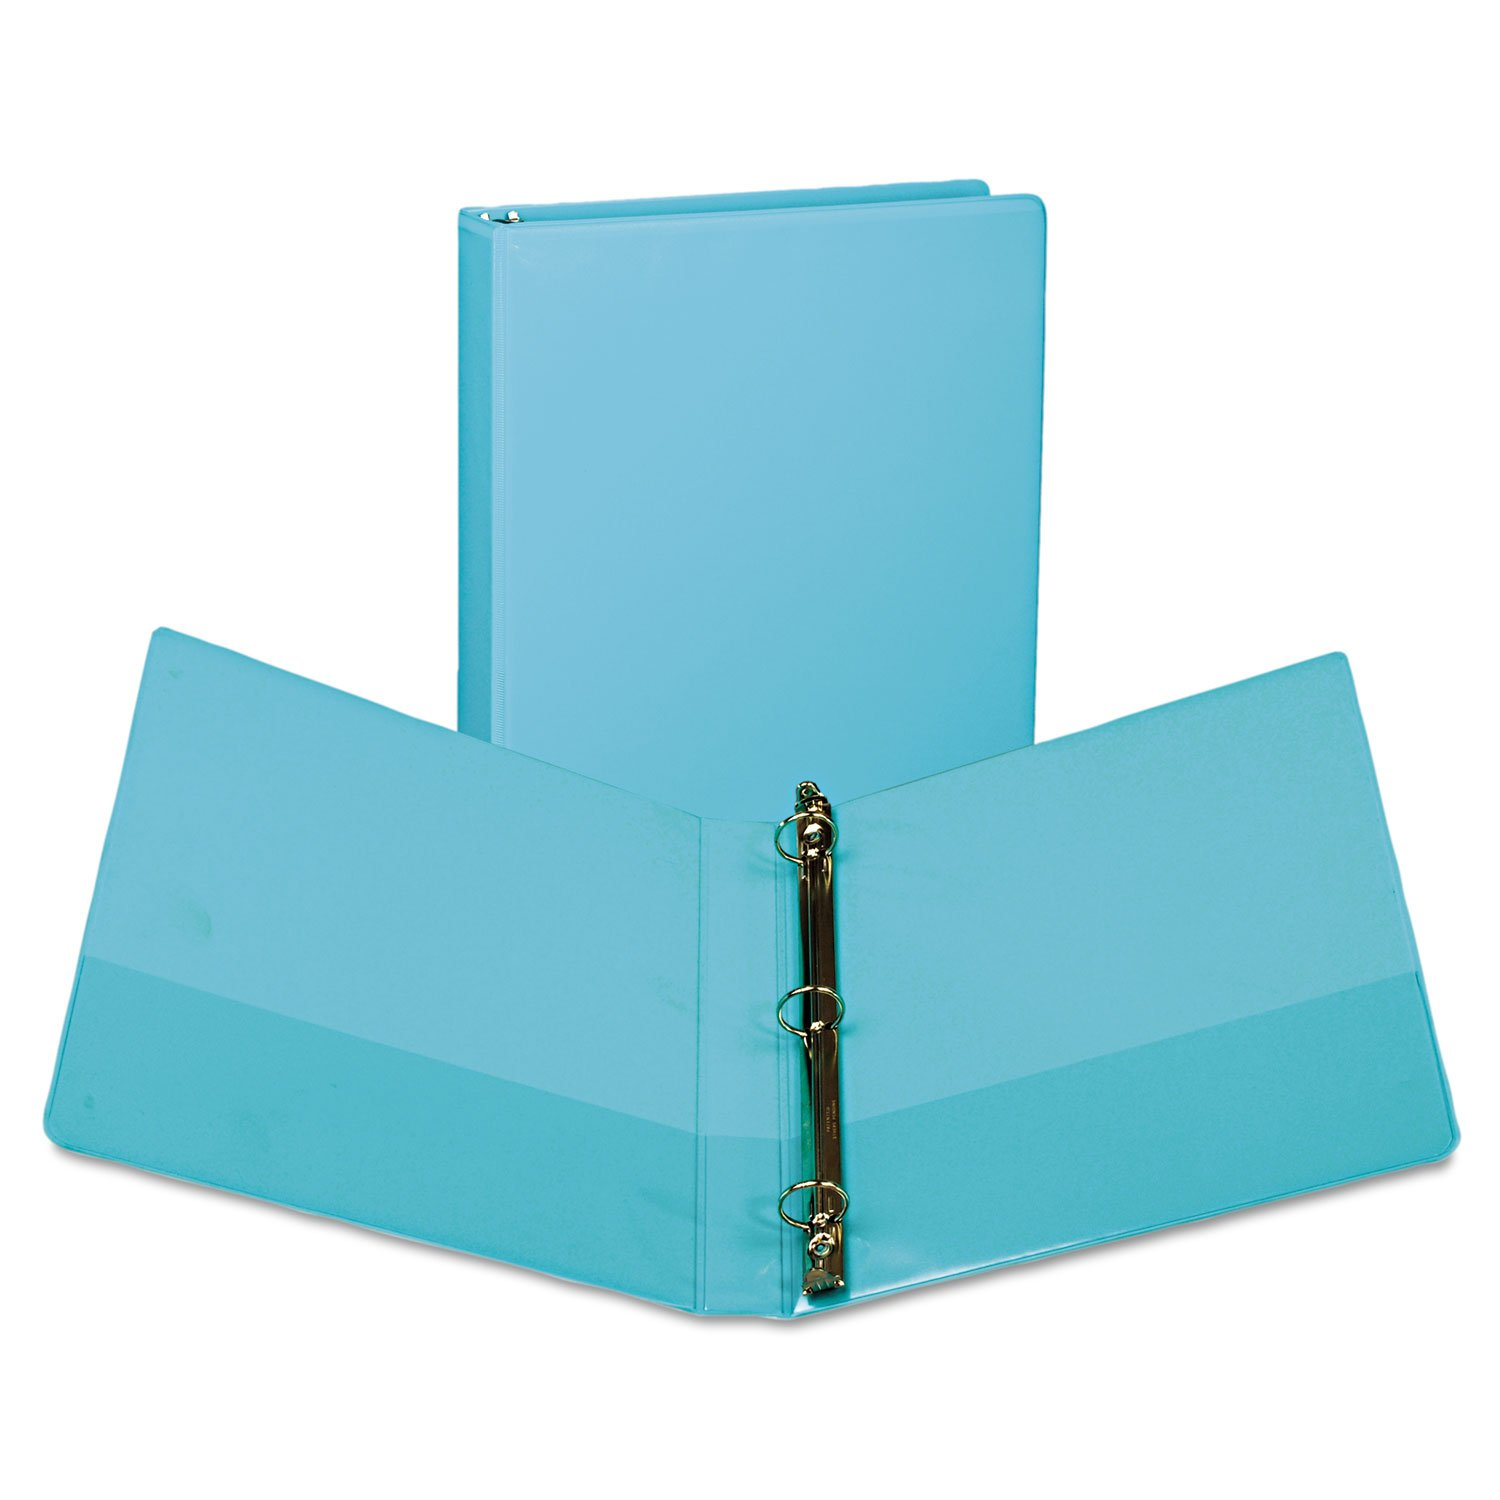 Samsill U86377 Fashion View Binder Round Ring 11 x 8-1/2 1'' Capacity Turquoise 2/Pack